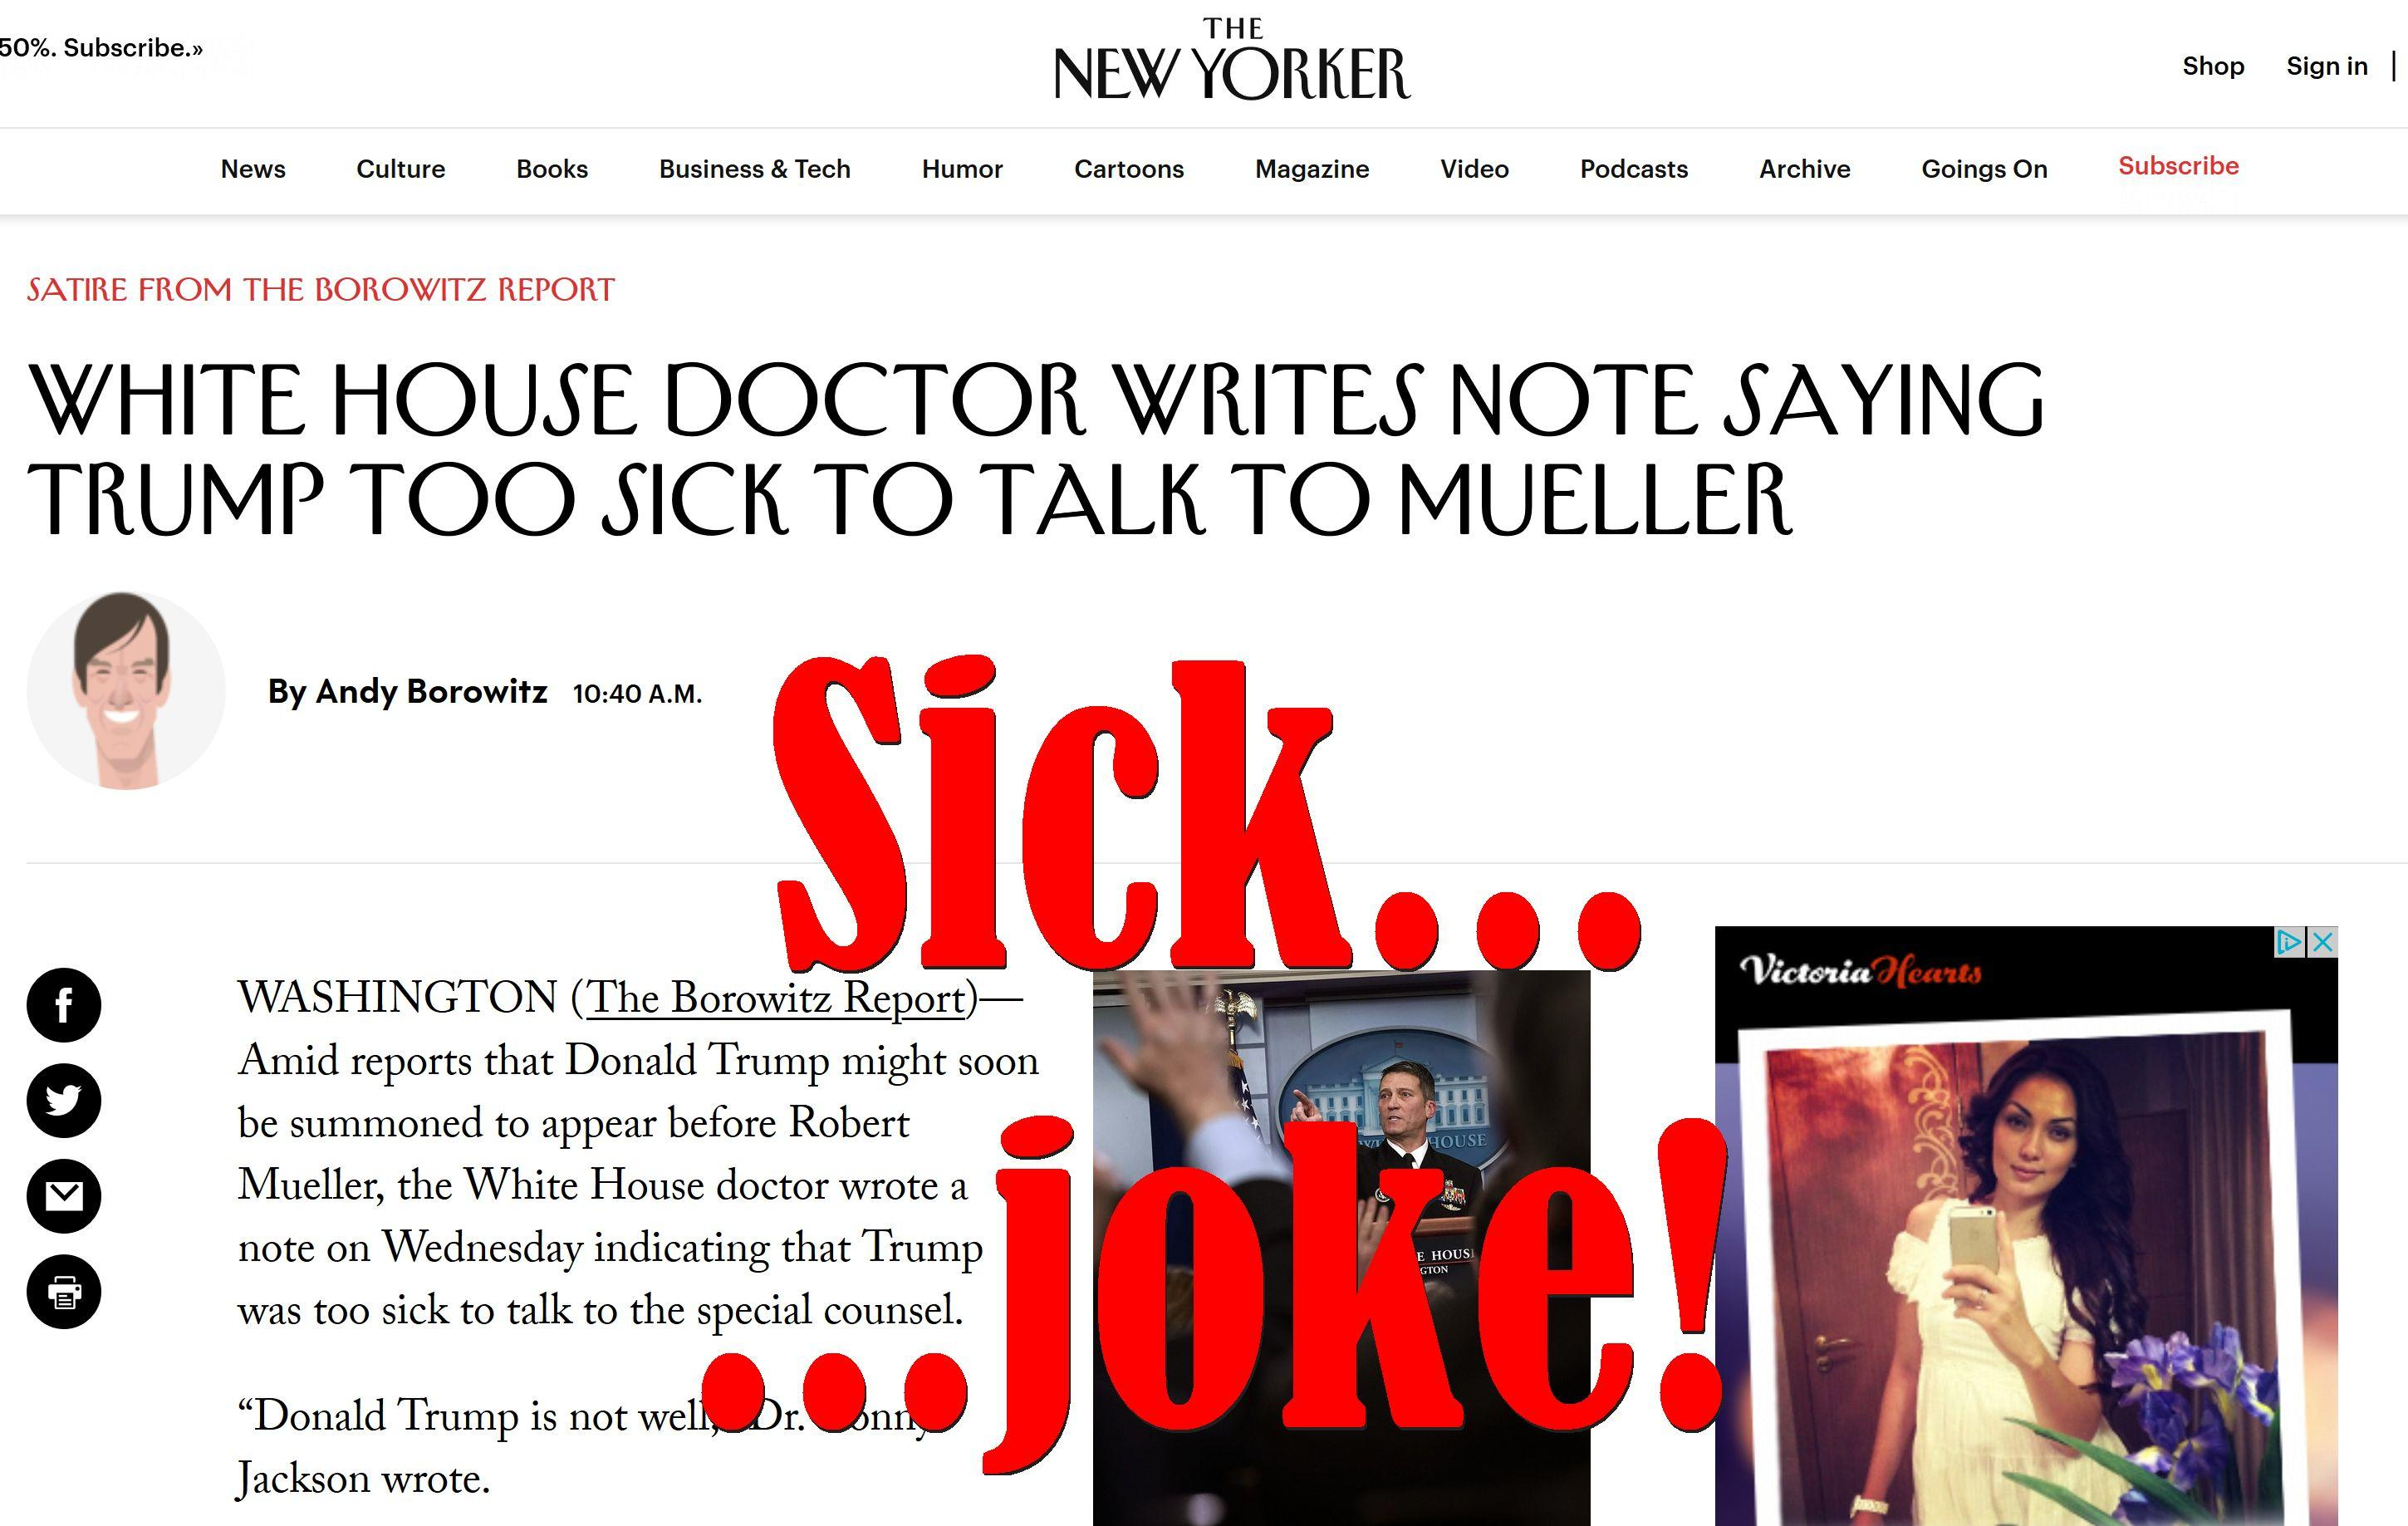 Fake News: White House Doctor Did NOT Write Note Saying Trump Too Sick to Talk to Mueller